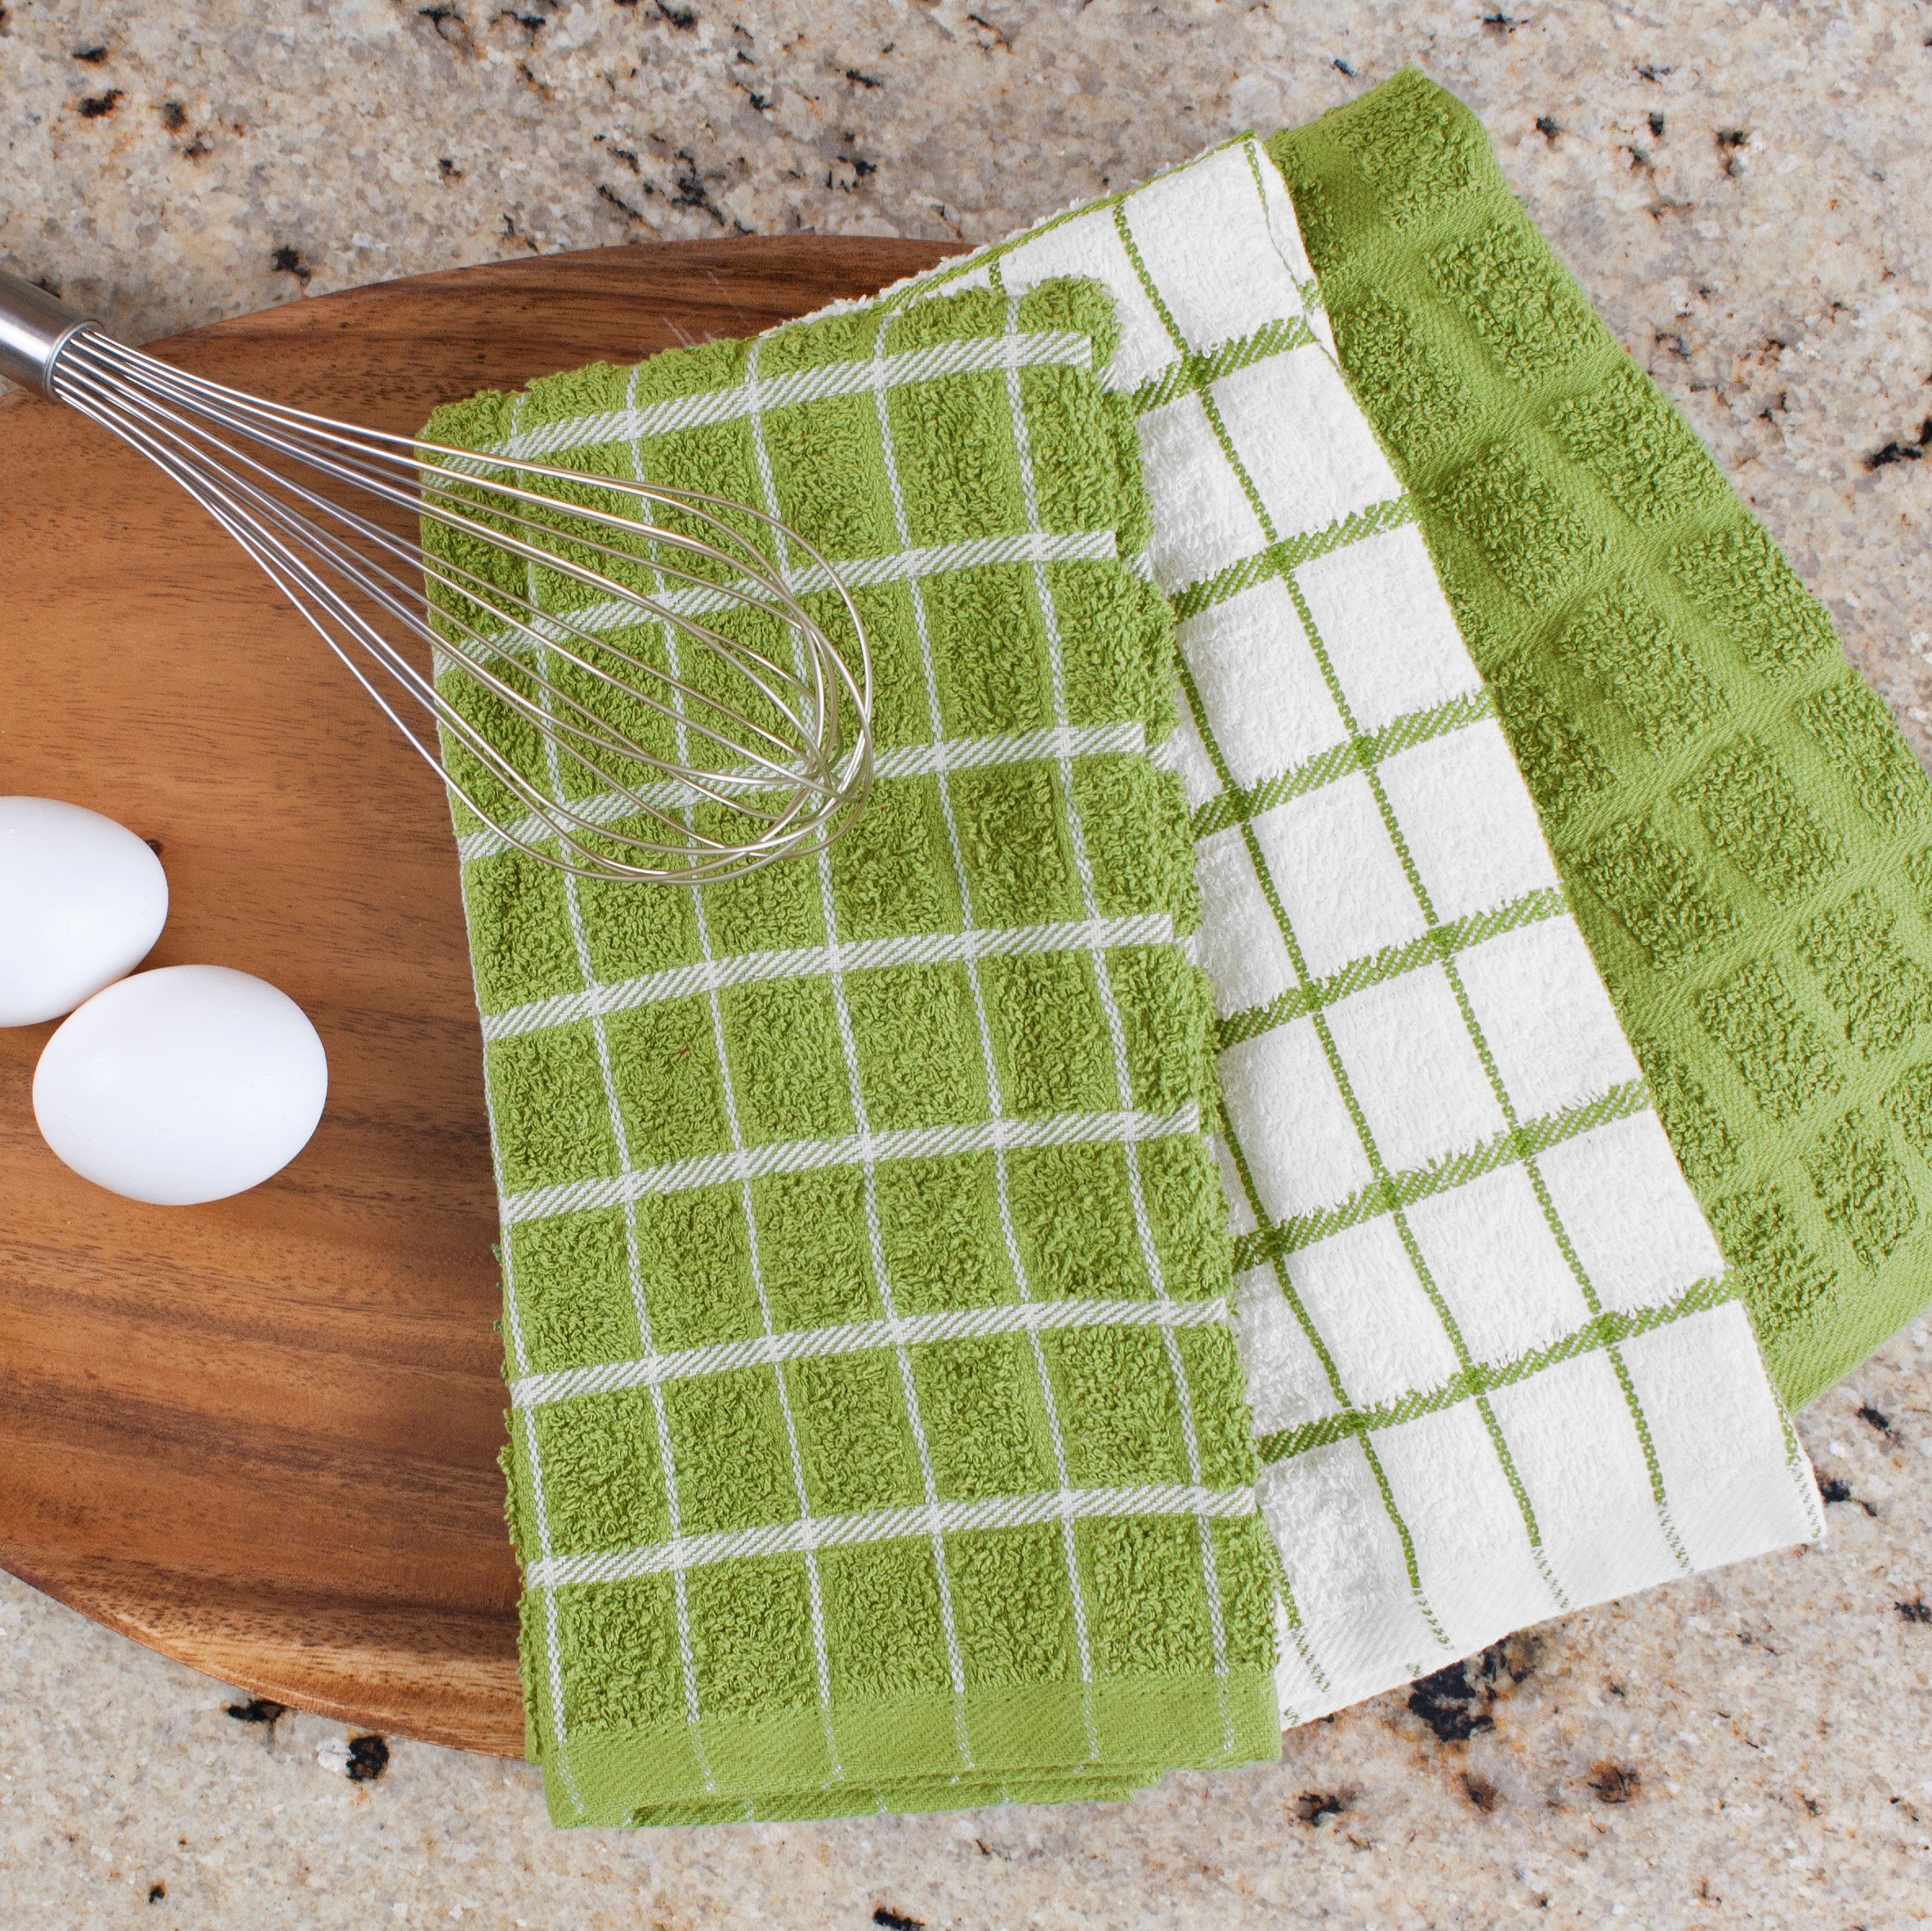 "Ritz 100% Cotton Terry Kitchen Dish Towels, Highly Absorbent, 25"" x 15"", 3-Pack, Cactus Green by Ritz (Image #8)"